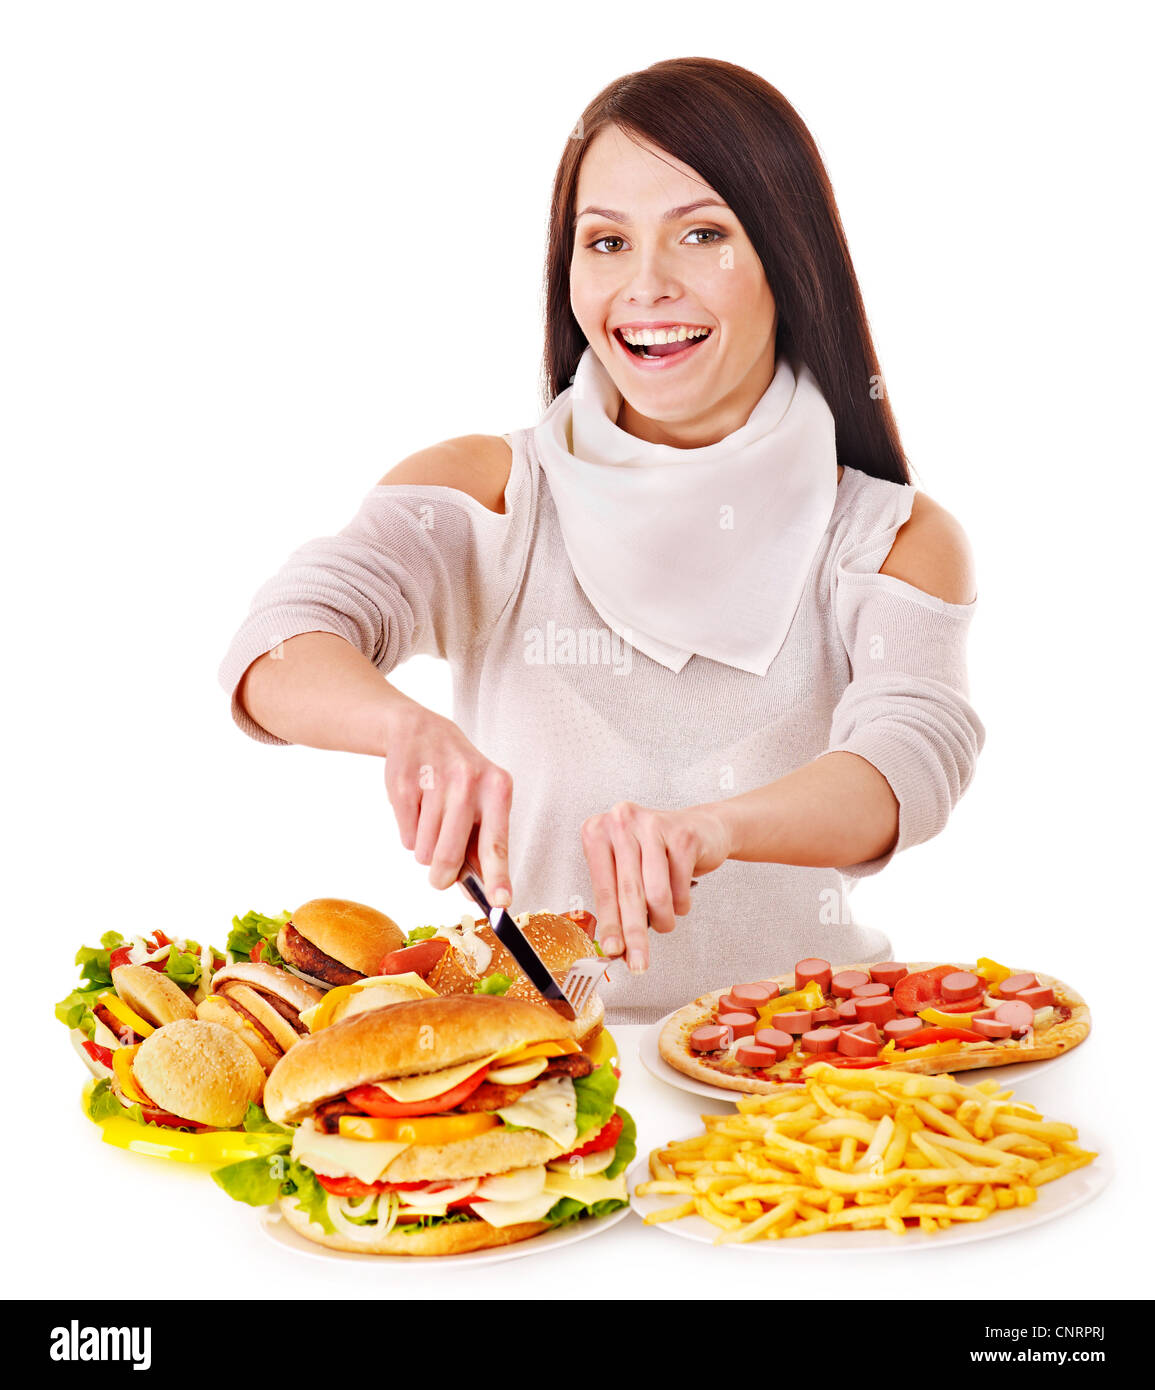 Woman eating fast food. Isolated. - Stock Image